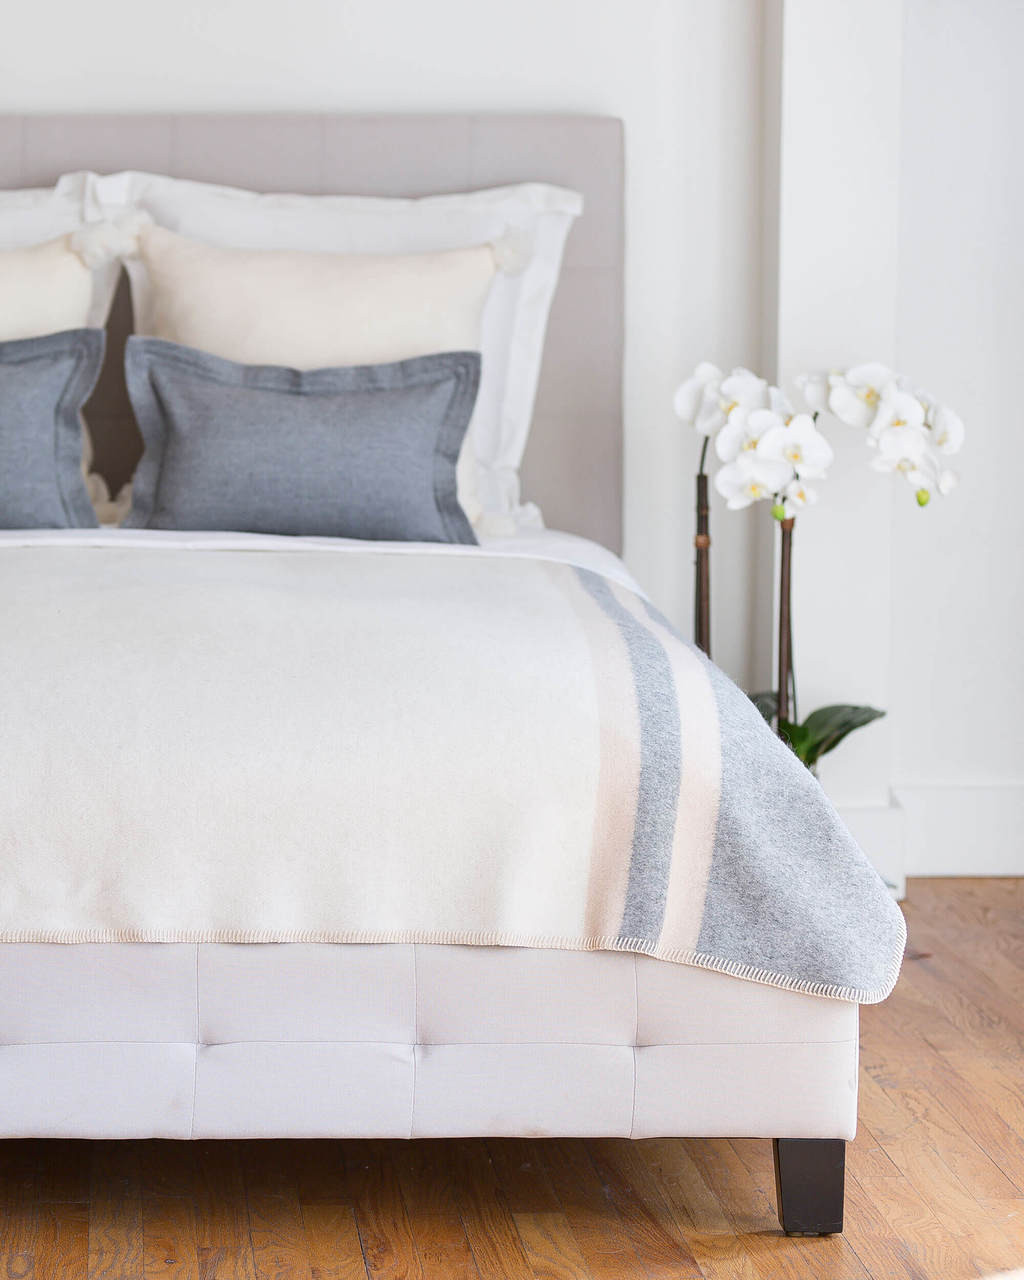 Ivory, taupe and blue multicolor Alicia Adams Alpaca Field Blanket in room setting ecofriendly recycled alpaca and wool handstitched blanket, famous designer, today show alpaca blanket, alicia adams today show